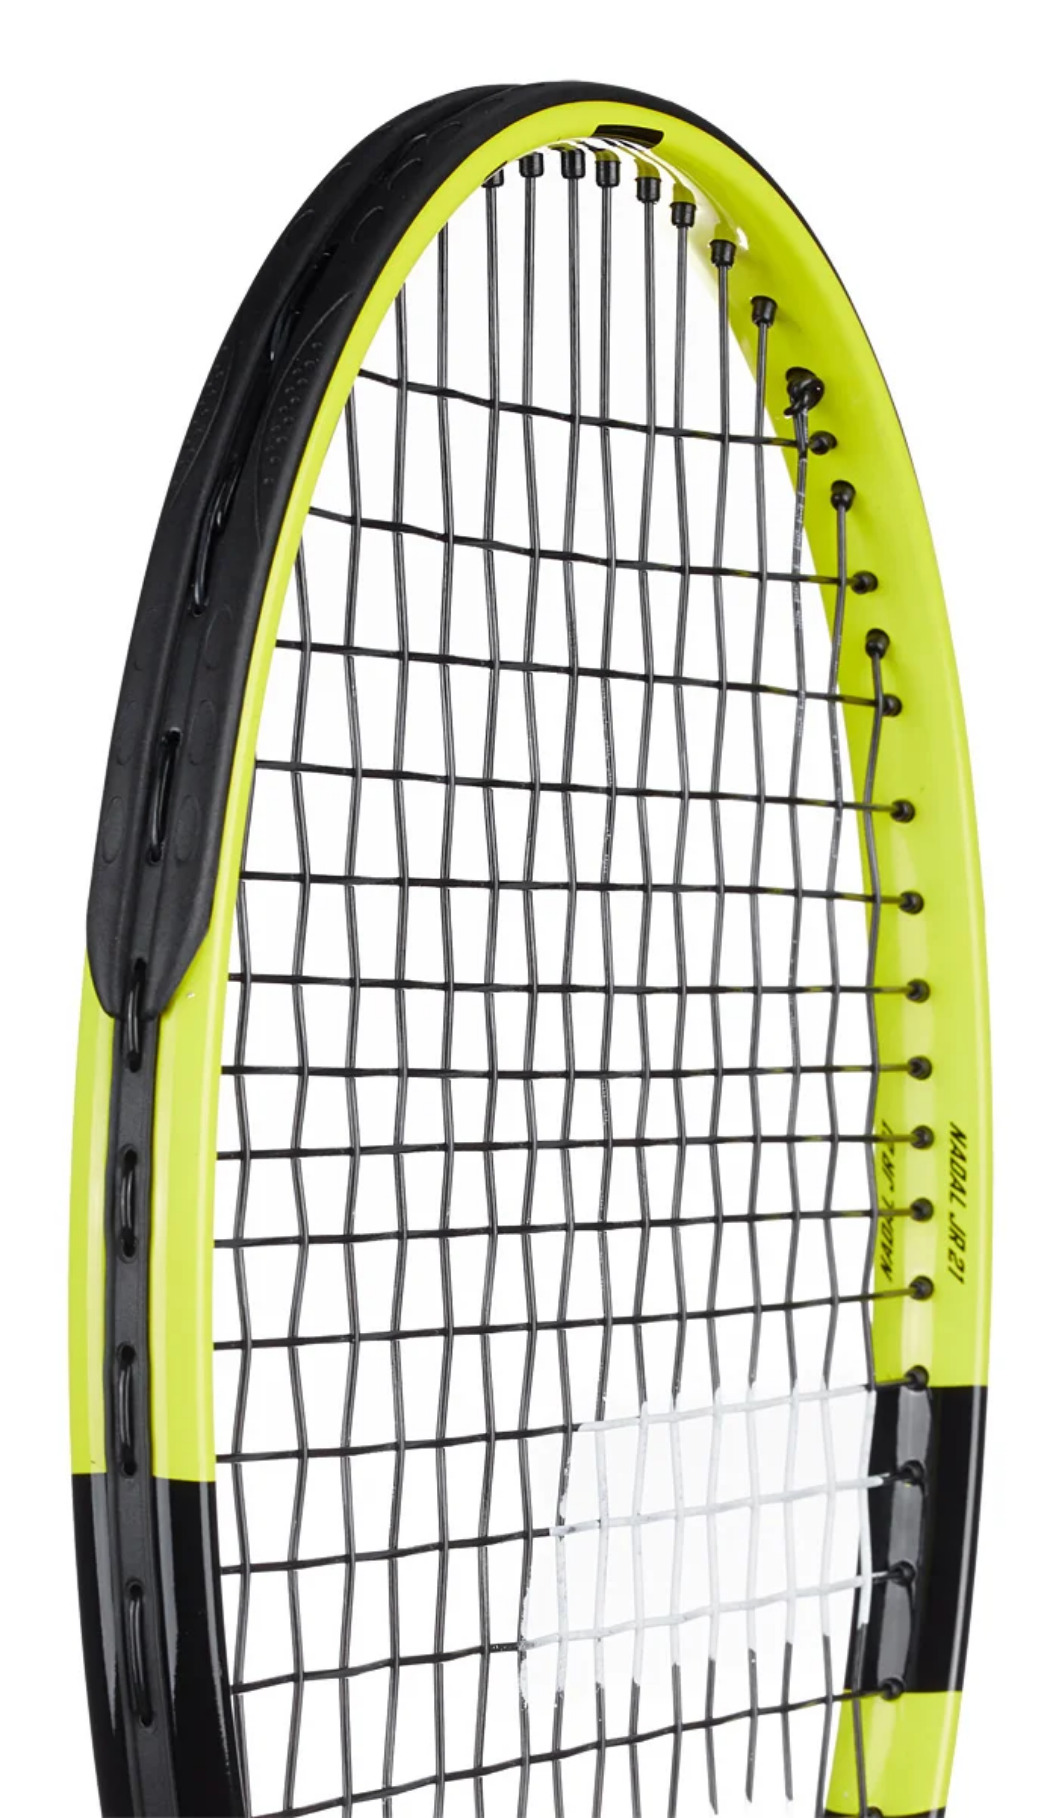 Babolat Nadal Junior Racquet For Kids - Ages 5-6 Years